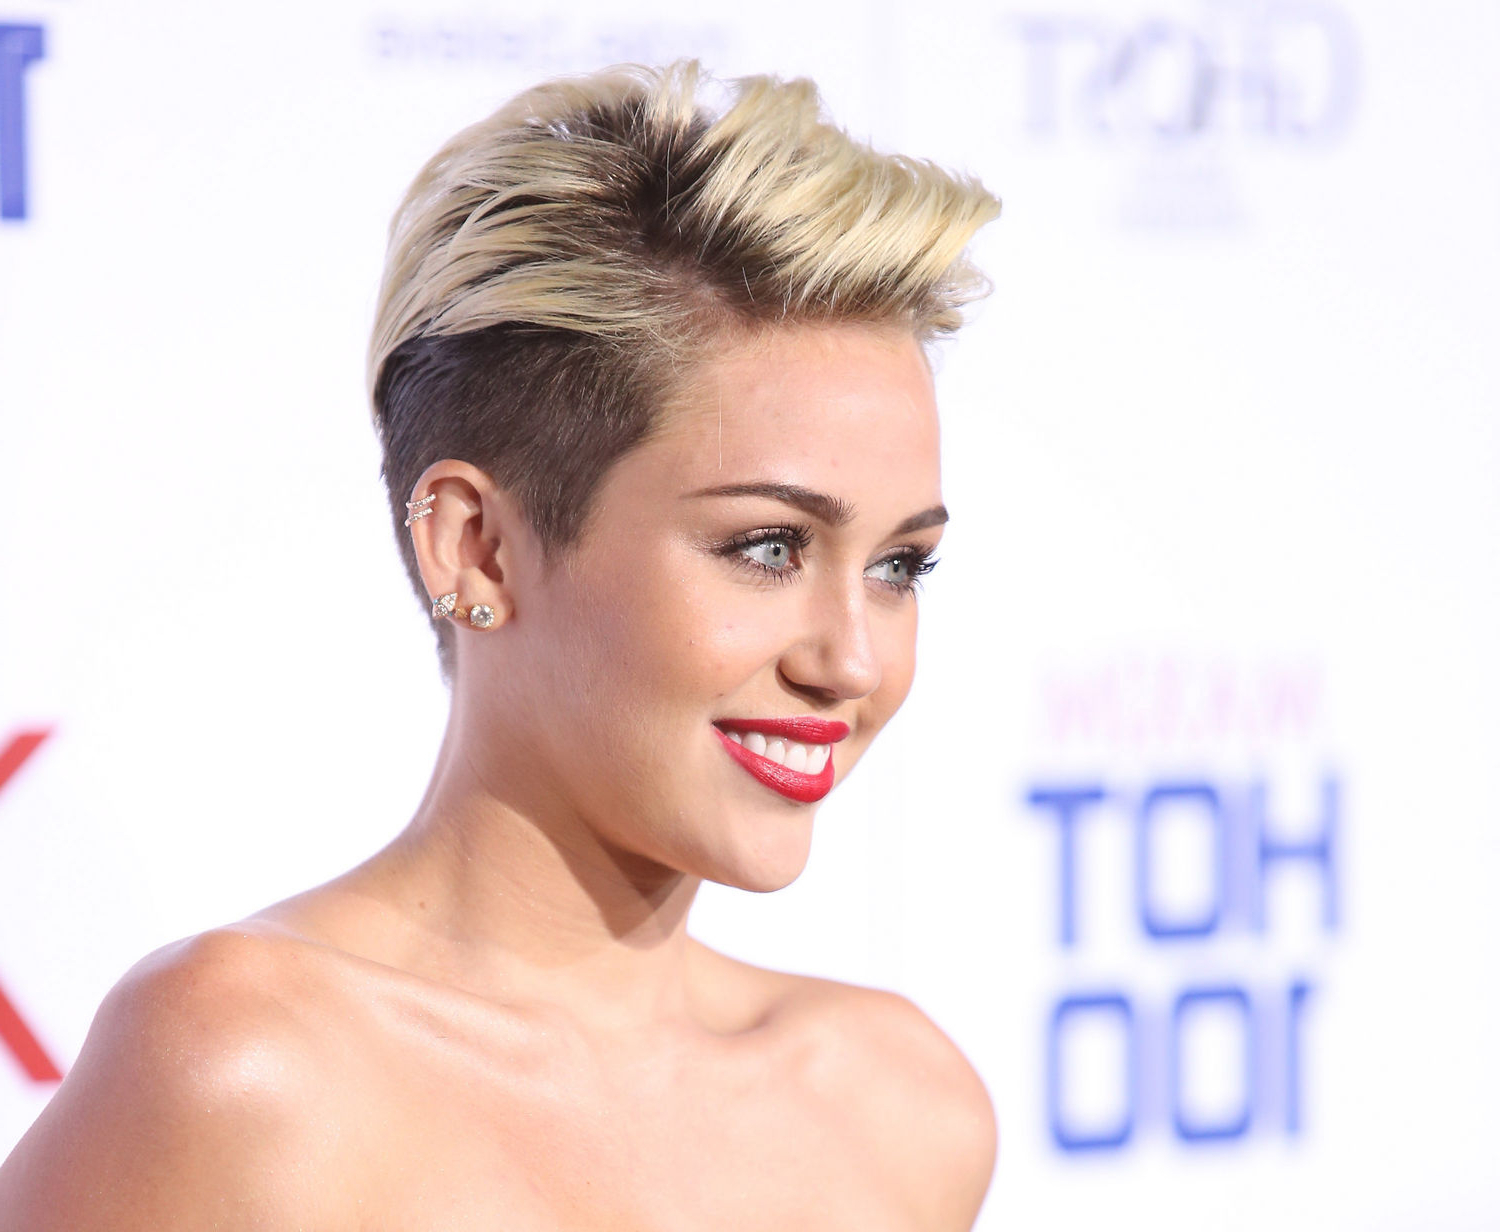 Short Hairstyles Miley Cyrus – Hairstyle For Women & Man In Miley Cyrus Short Hairstyles (View 20 of 25)